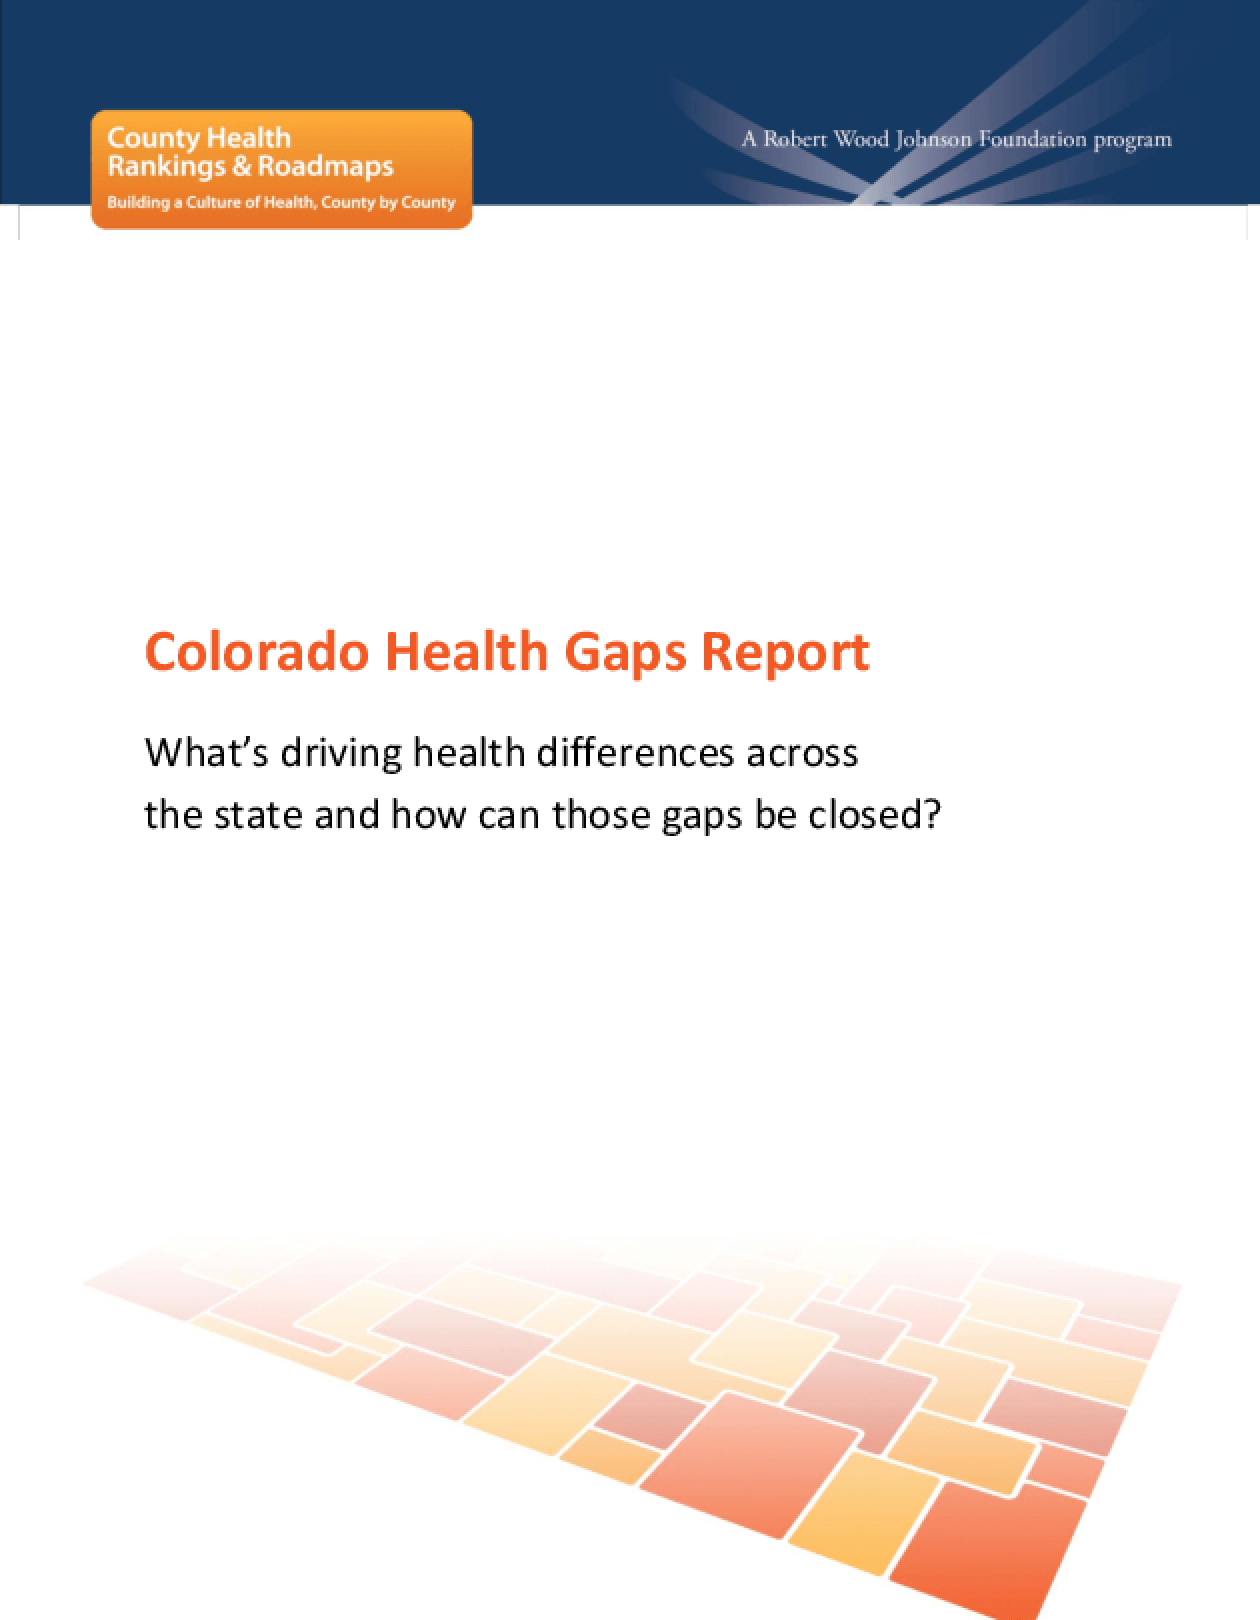 Colorado Health Gaps Report: What's Driving Health Differences Across the State and How Can Those Gaps Be Closed?